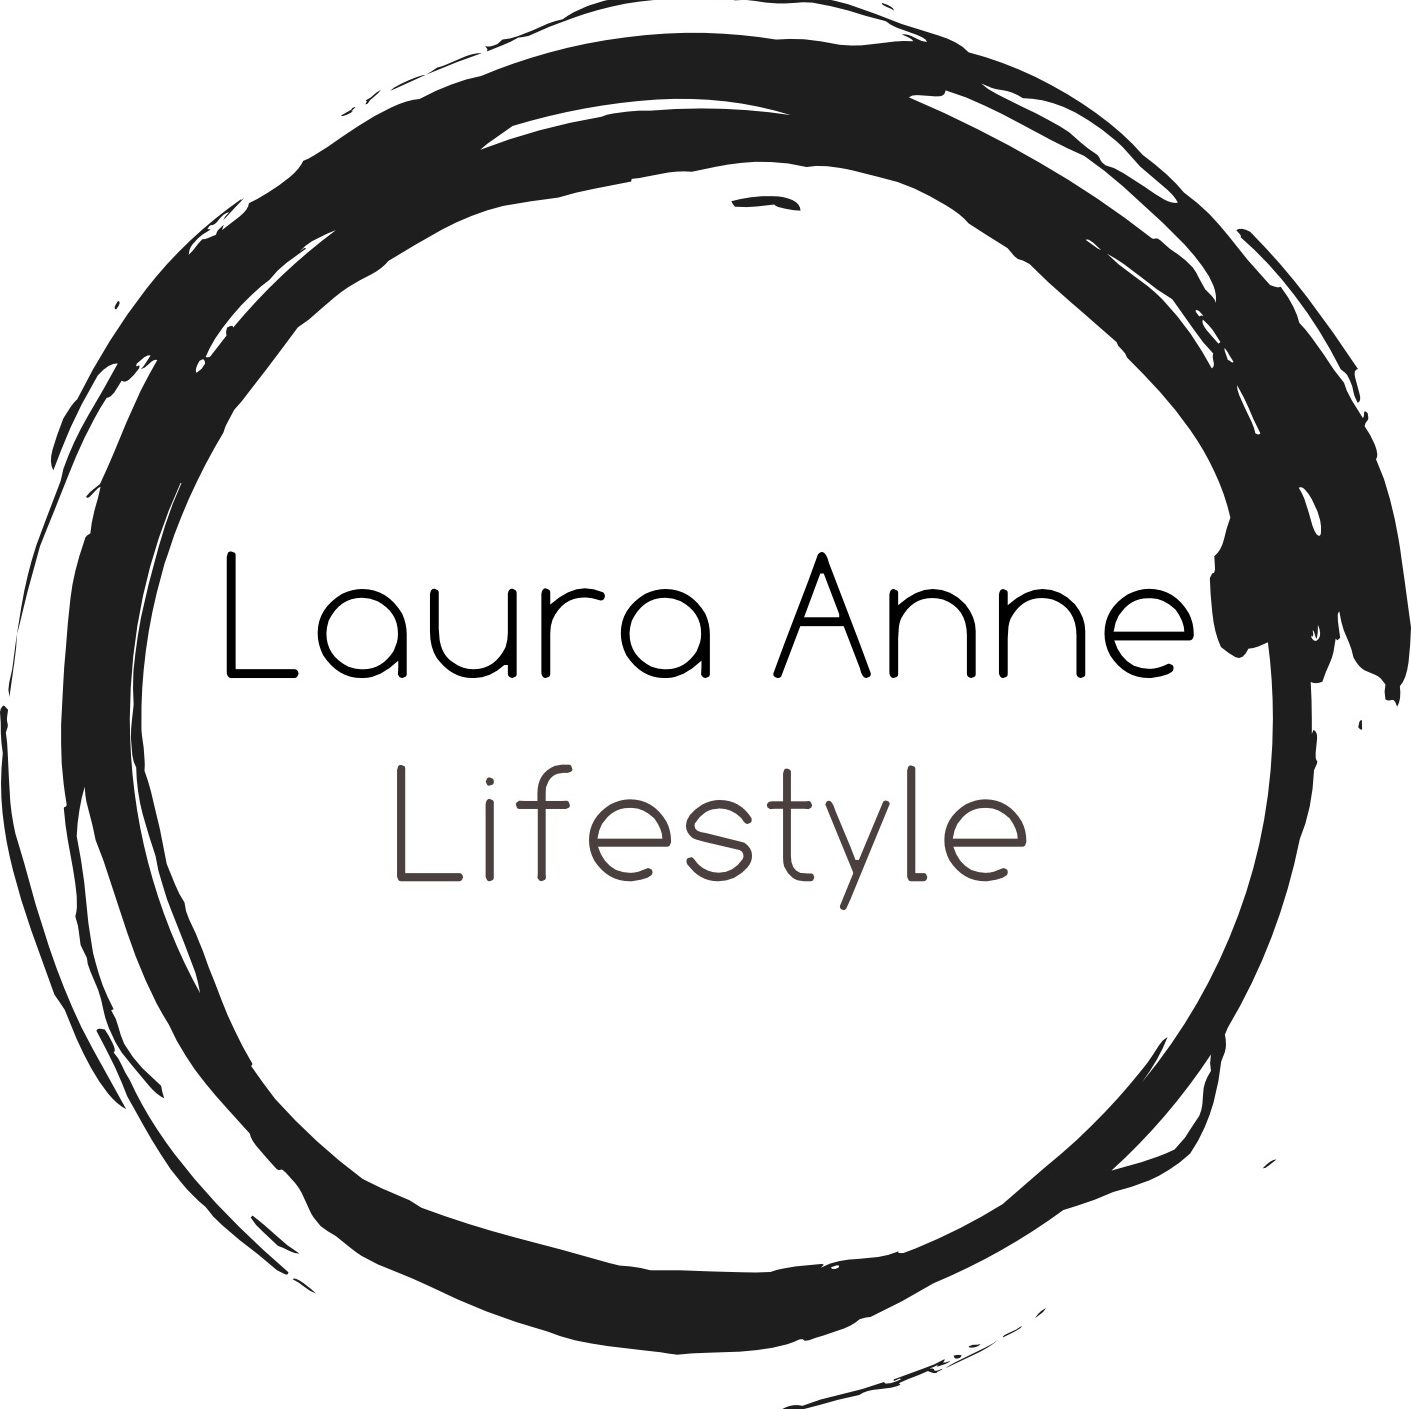 Laura Anne Lifestyle